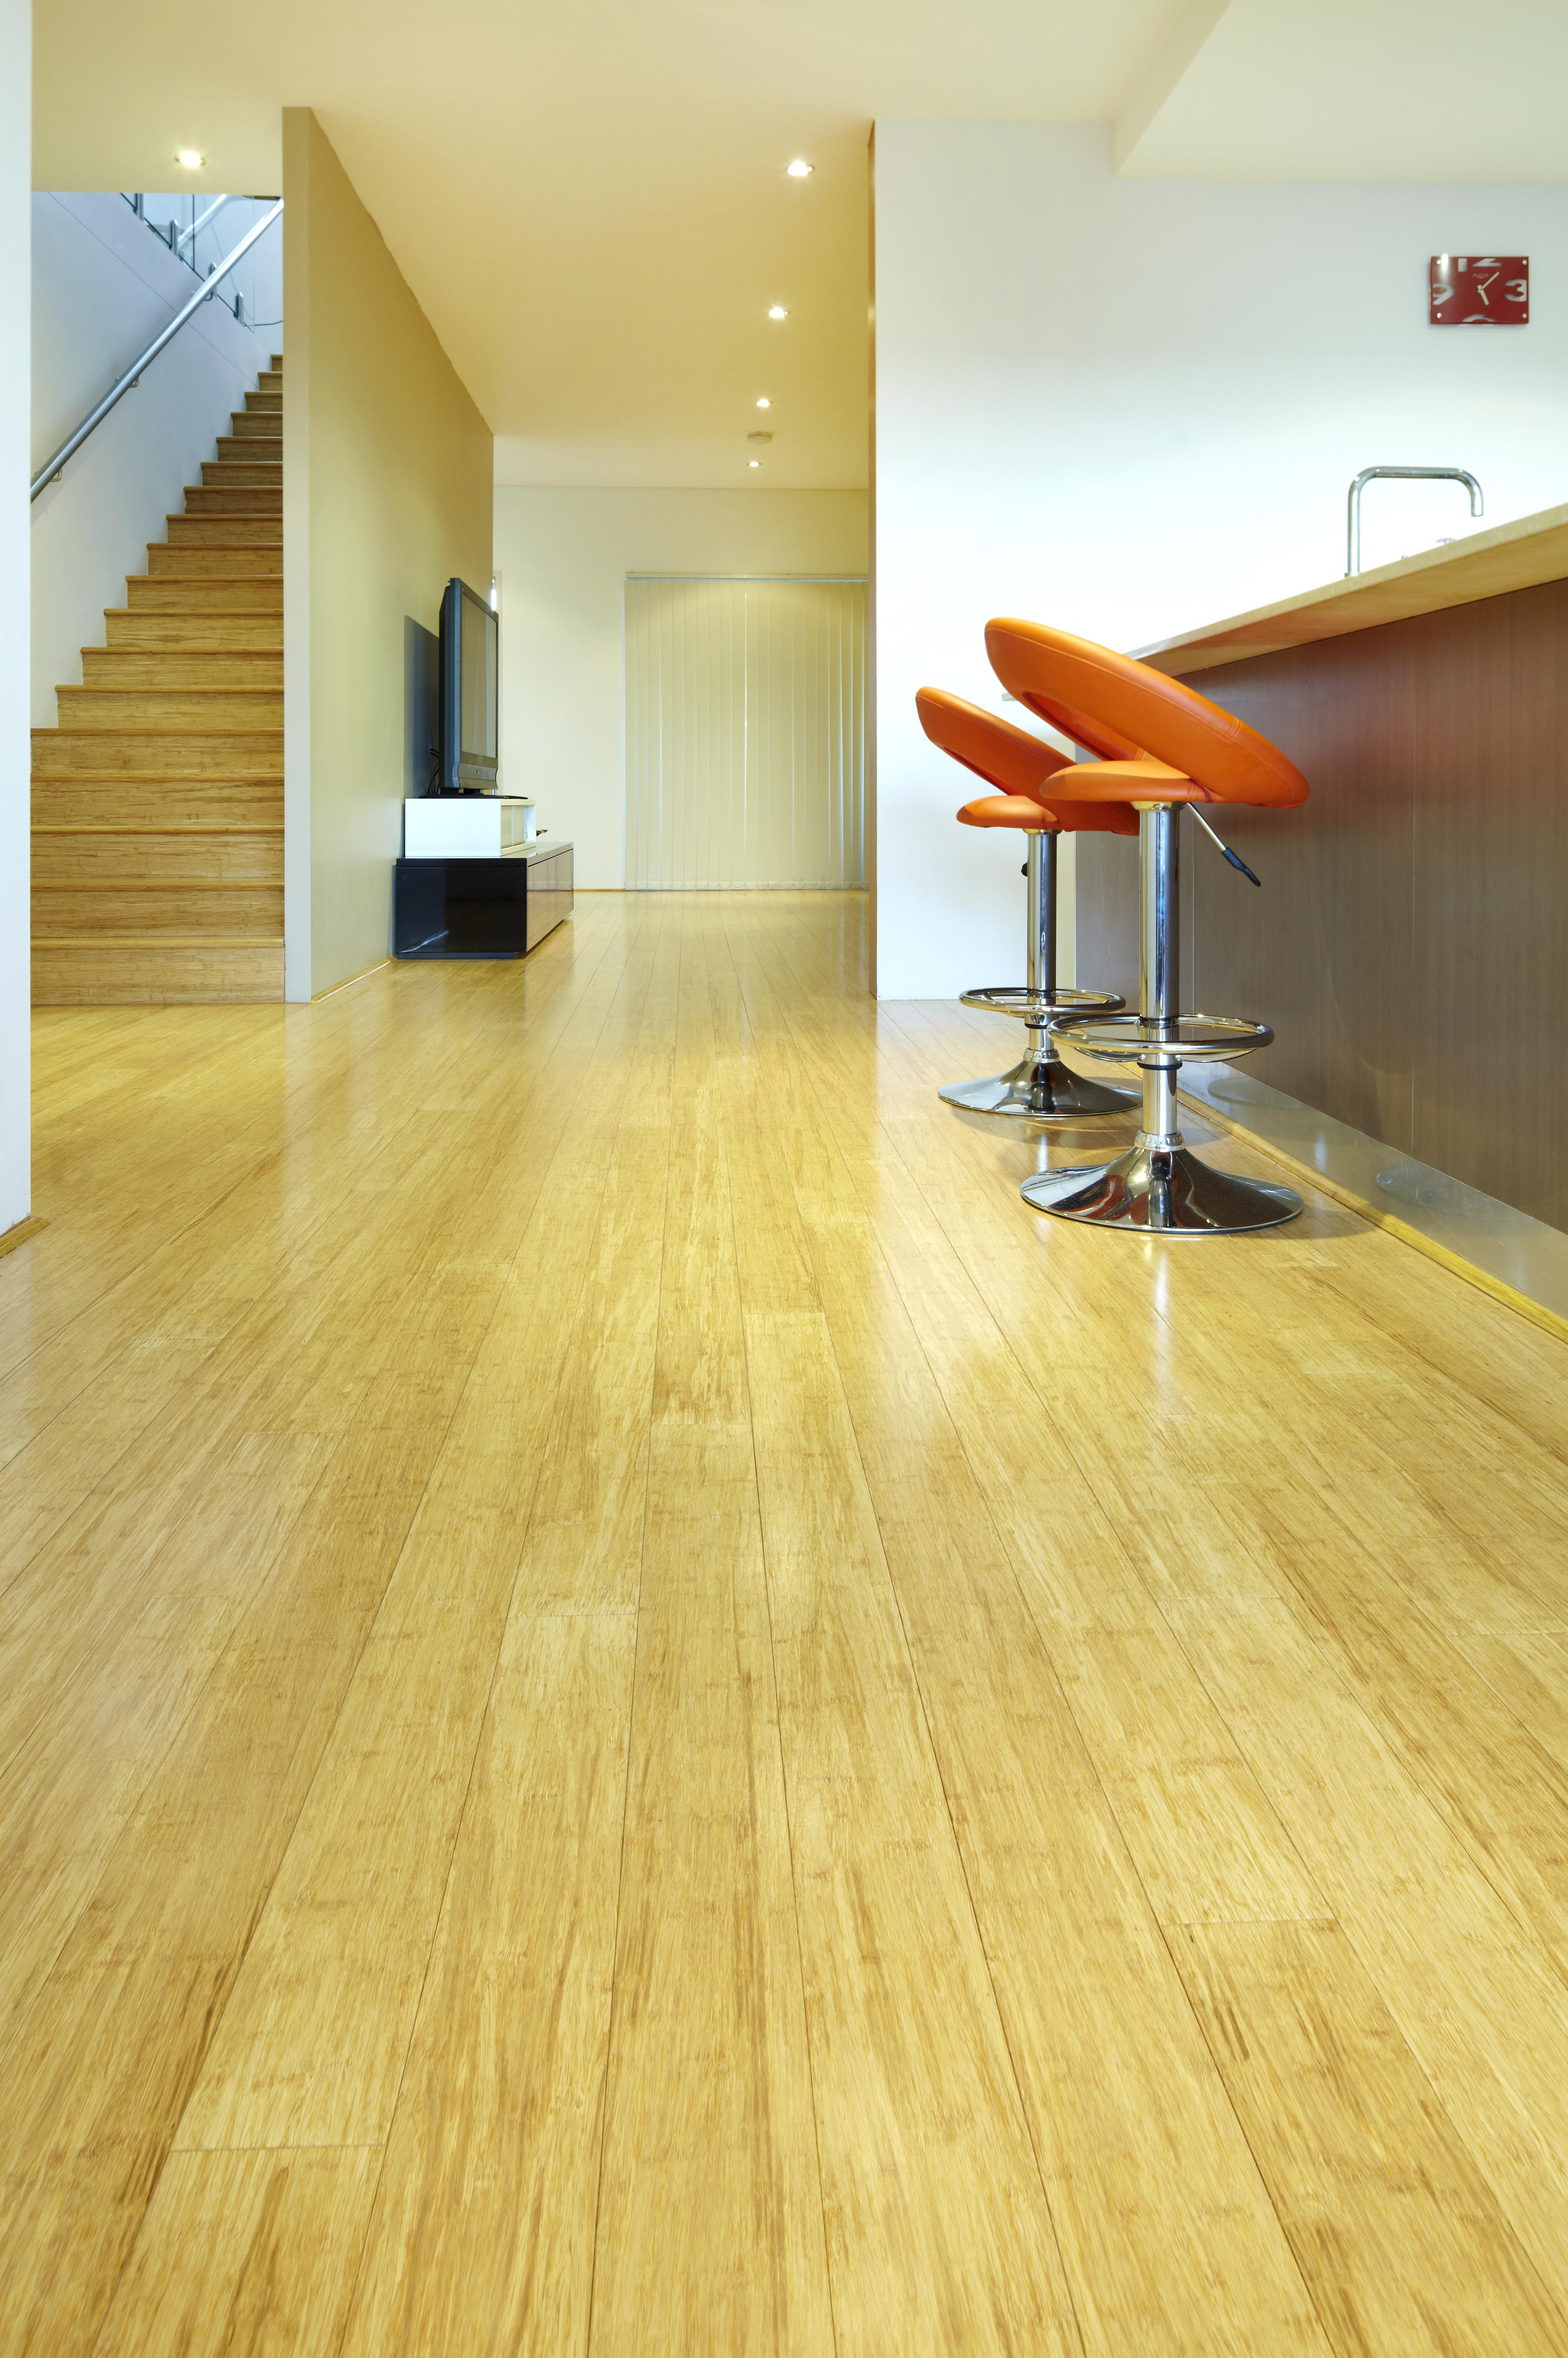 Bamboo Flooring Green Alternatives To Timber Floors Stonewood Natural Bamboo Stonewood Is 1850x125x14mm A Hot Press Solid Board With A Drop Lo Vloeren Bamboe